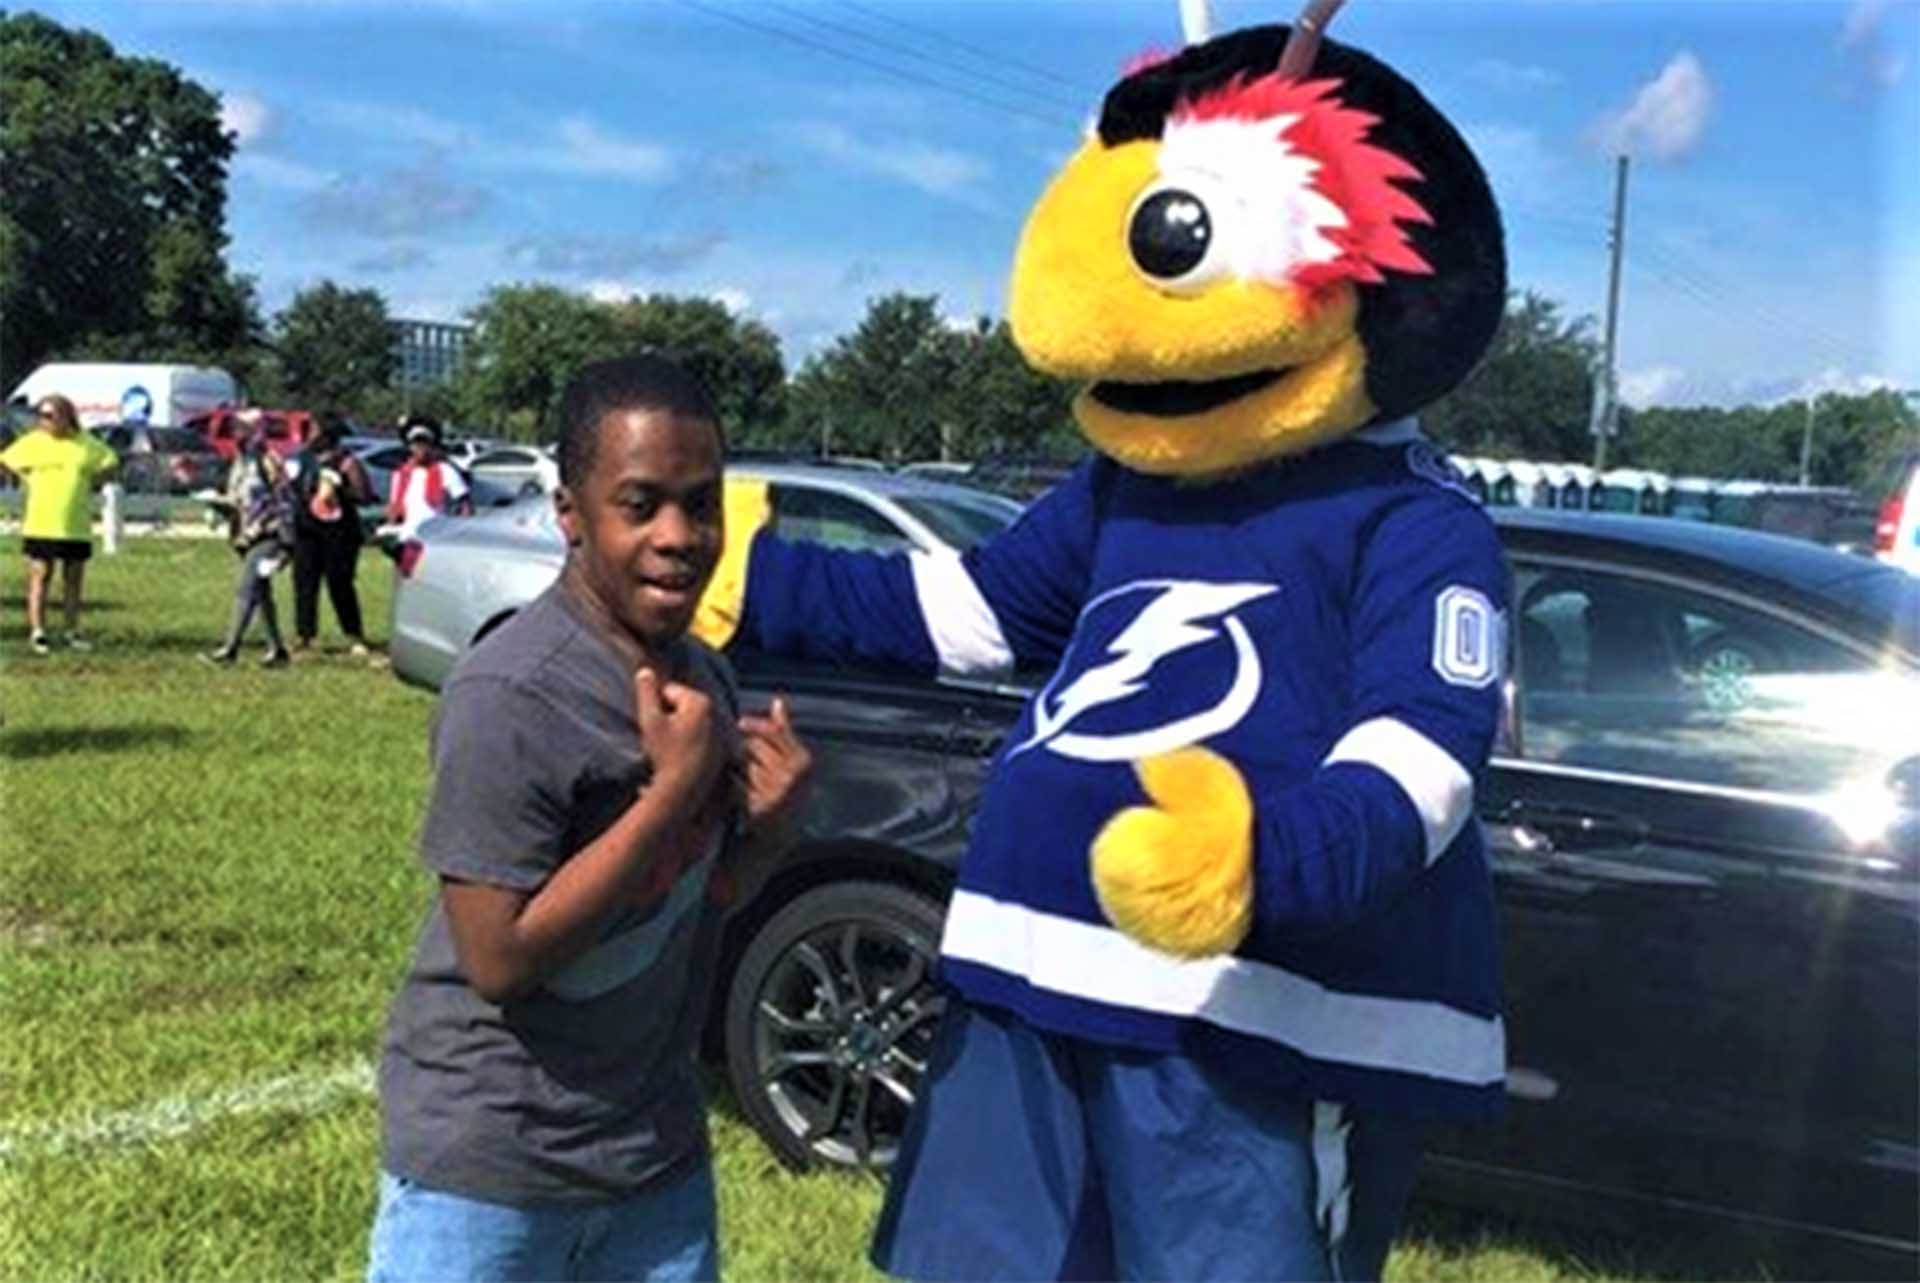 Care Member with a mascot